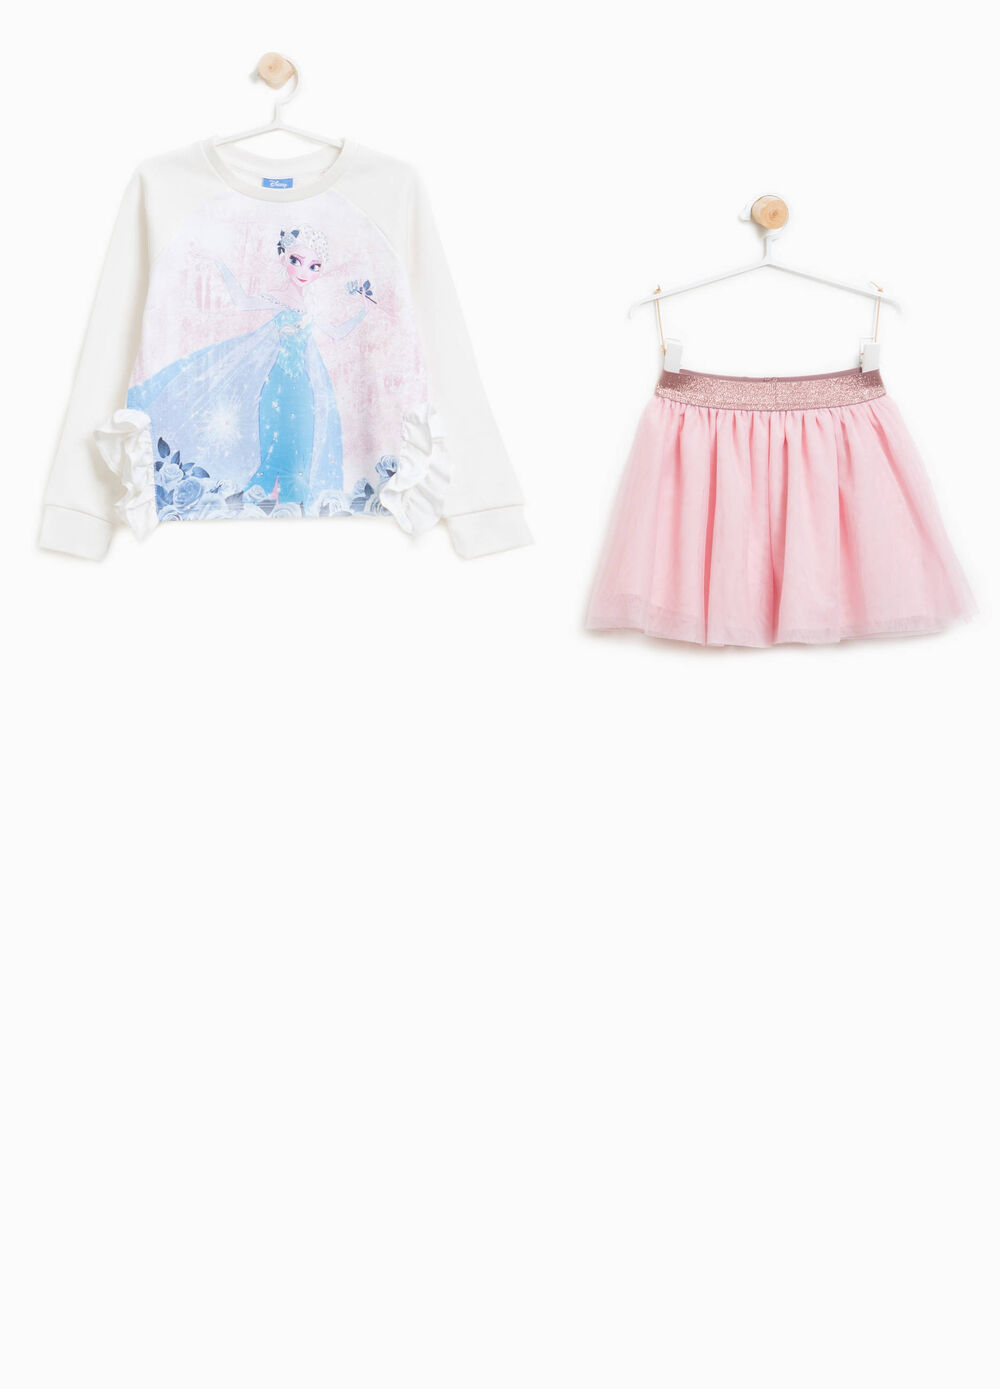 Frozen sweatshirt and skirt outfit